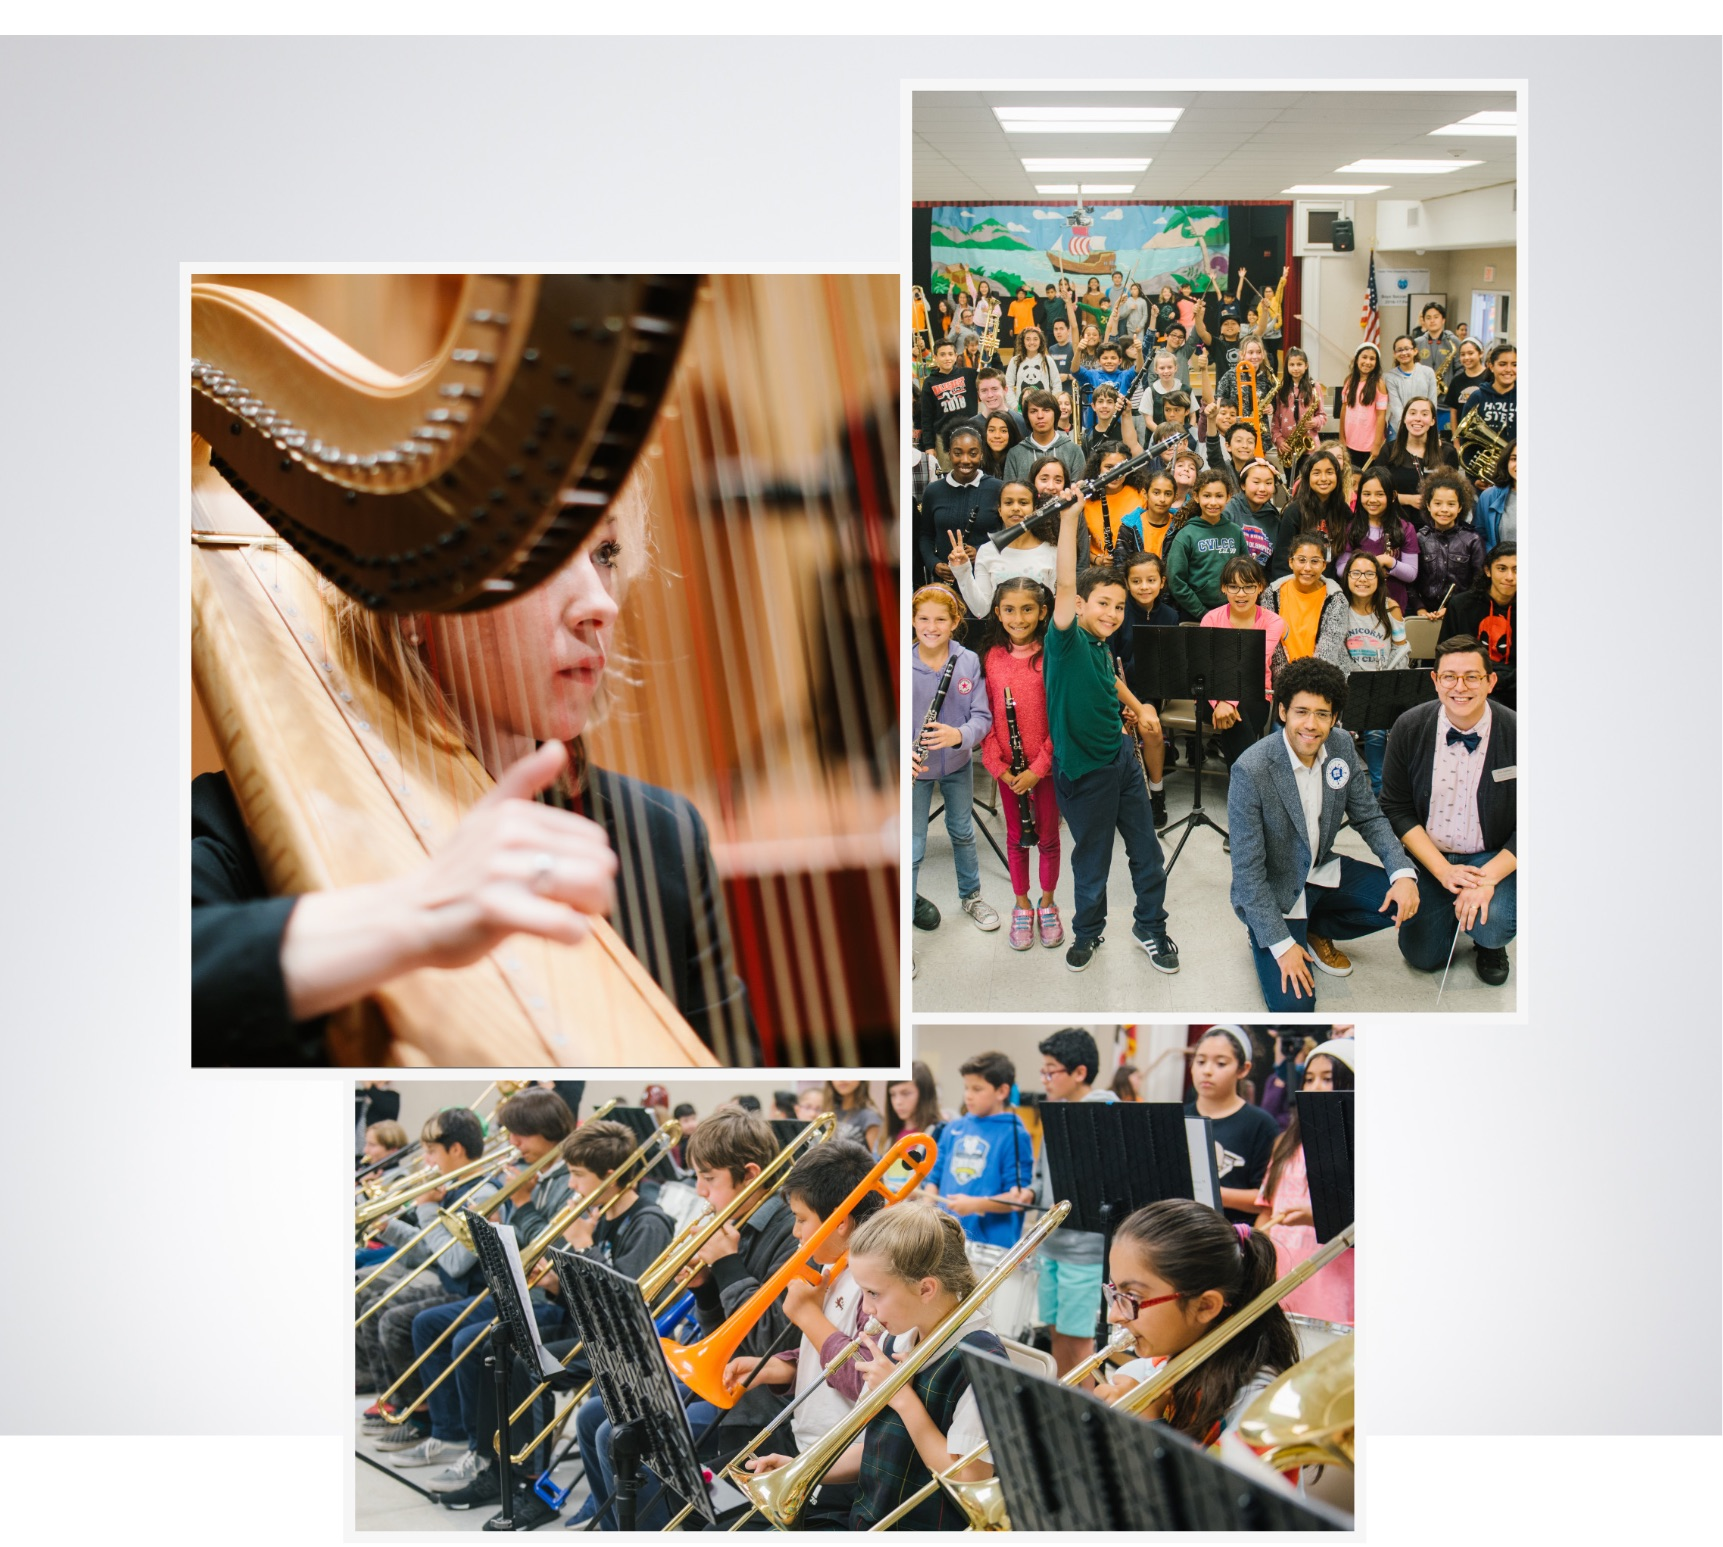 collage of images. Symphony musicians, Rafael Payare with students, children playing instruments.